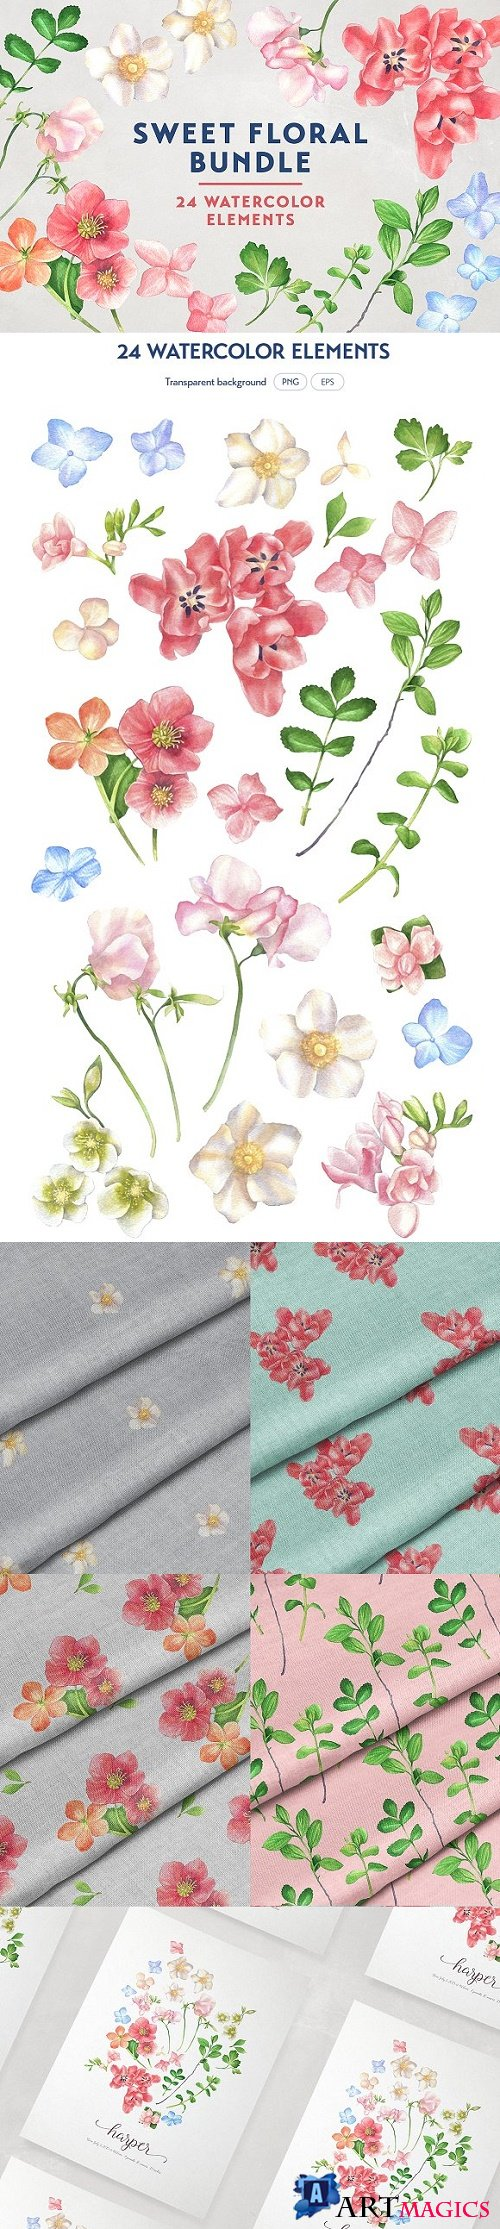 Sweet Floral Watercolor Bundle - 2111271